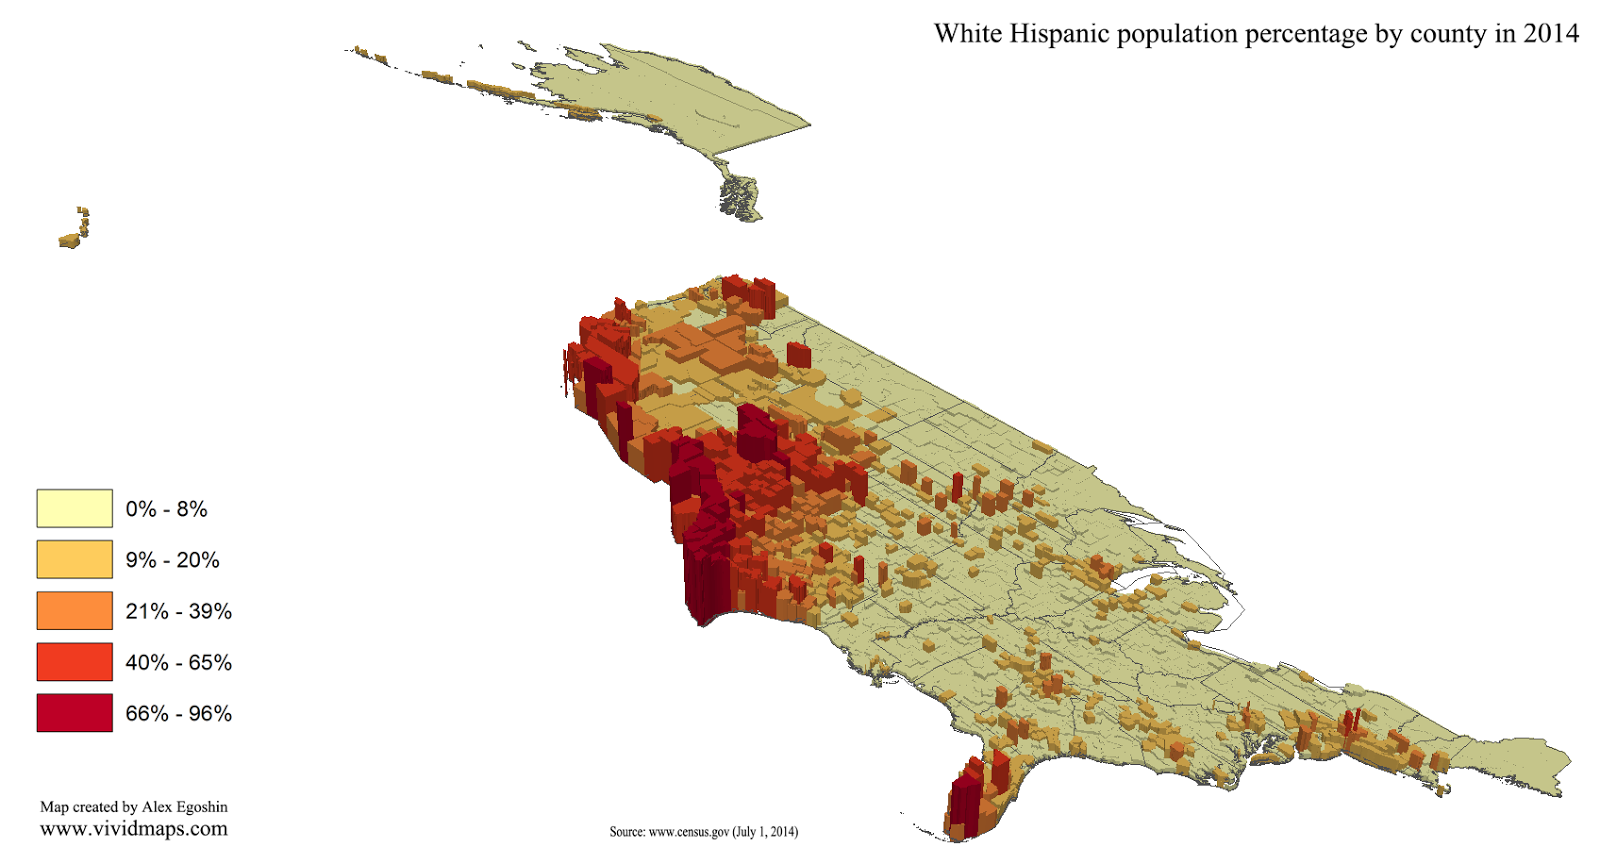 White Hispanic population percentage by county